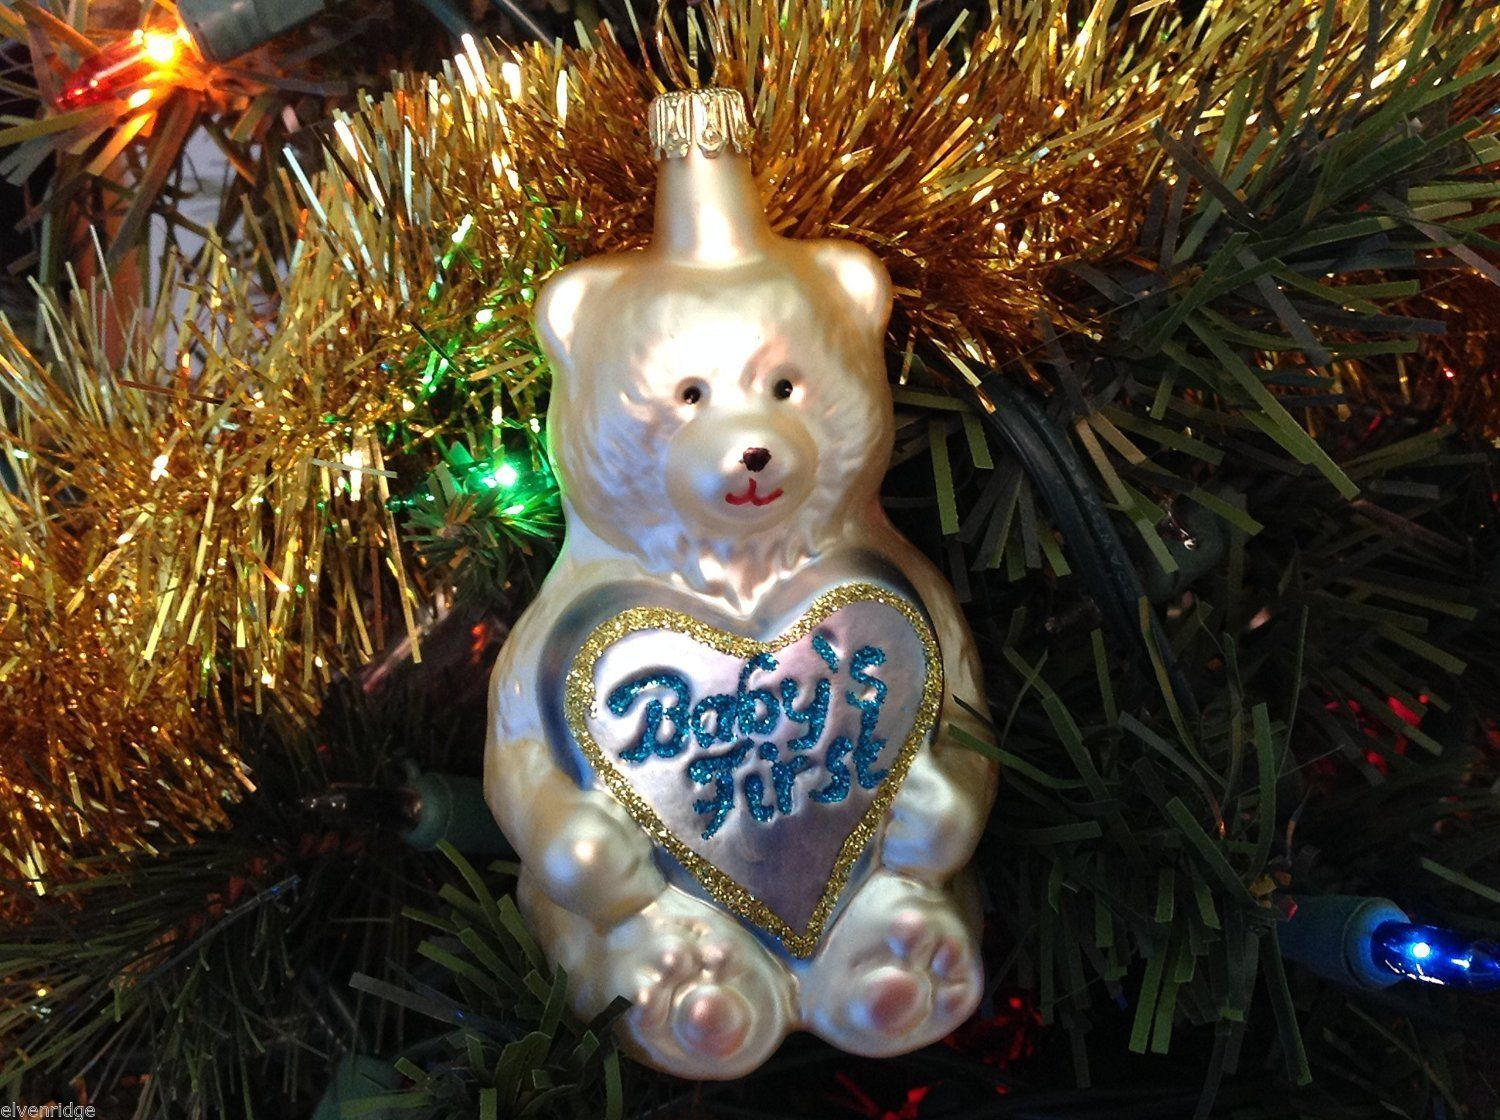 Babys First Bear Old German Christmas Glass Tree Ornament Handmade